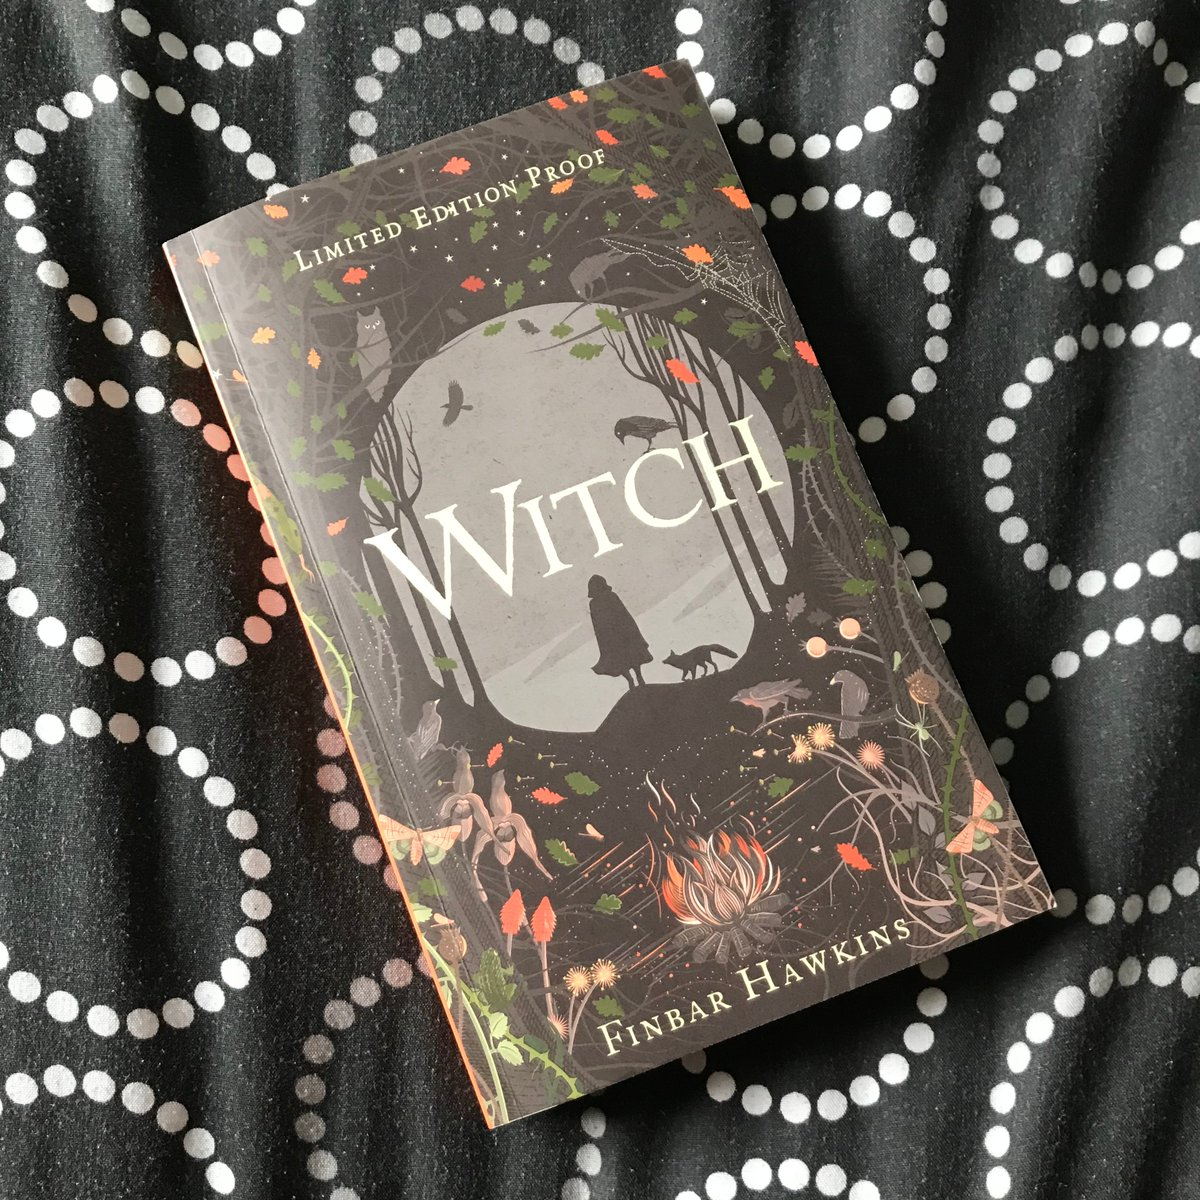 Just posted Book Review: Witch by Finbar Hawkins: https://t.co/XD62kyhwoX  A historical that's disappointing as a fantasy and a historical novel, and also potentially problematic.  I was #gifted this proof by the publisher for the purposes of providing an honest review. https://t.co/fld997pxOq